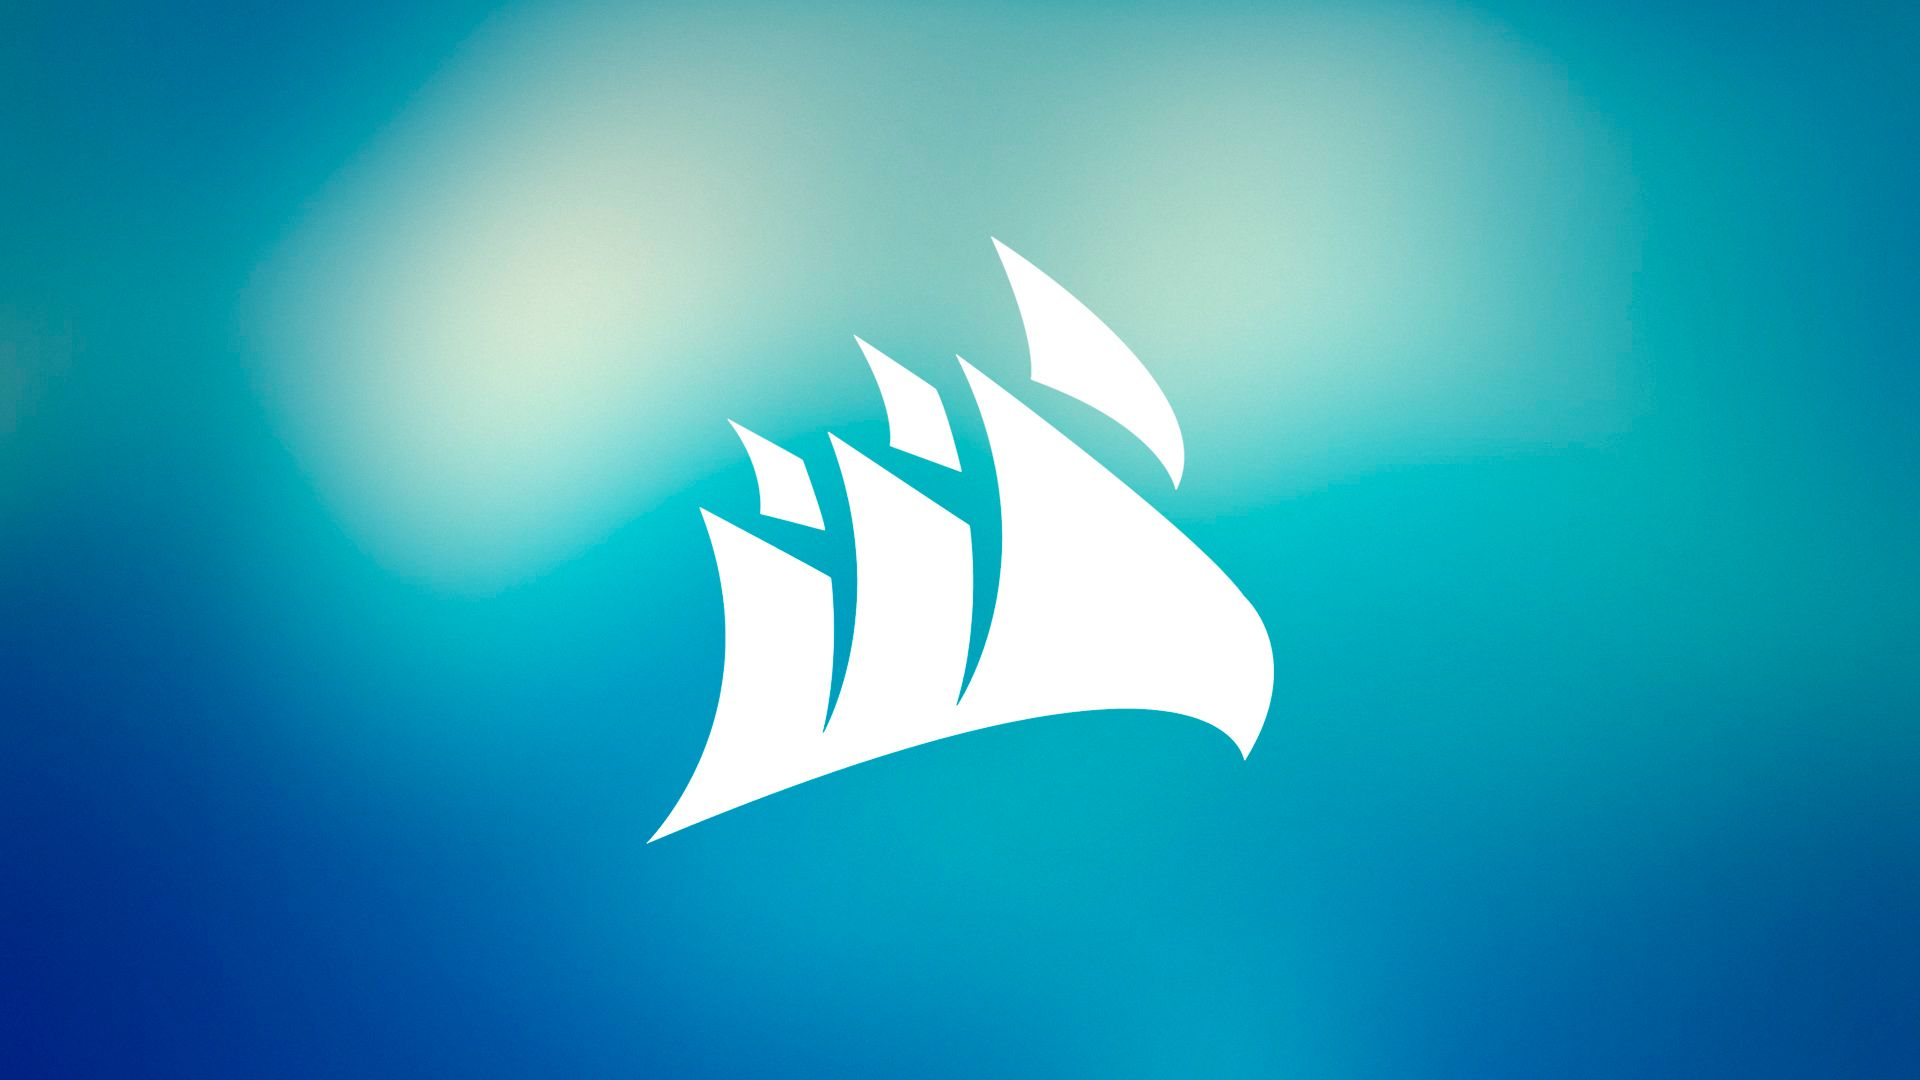 1920x1080 Corsair Wallpapers, 38 Corsair Backgrounds Collection for Mobile, D ...